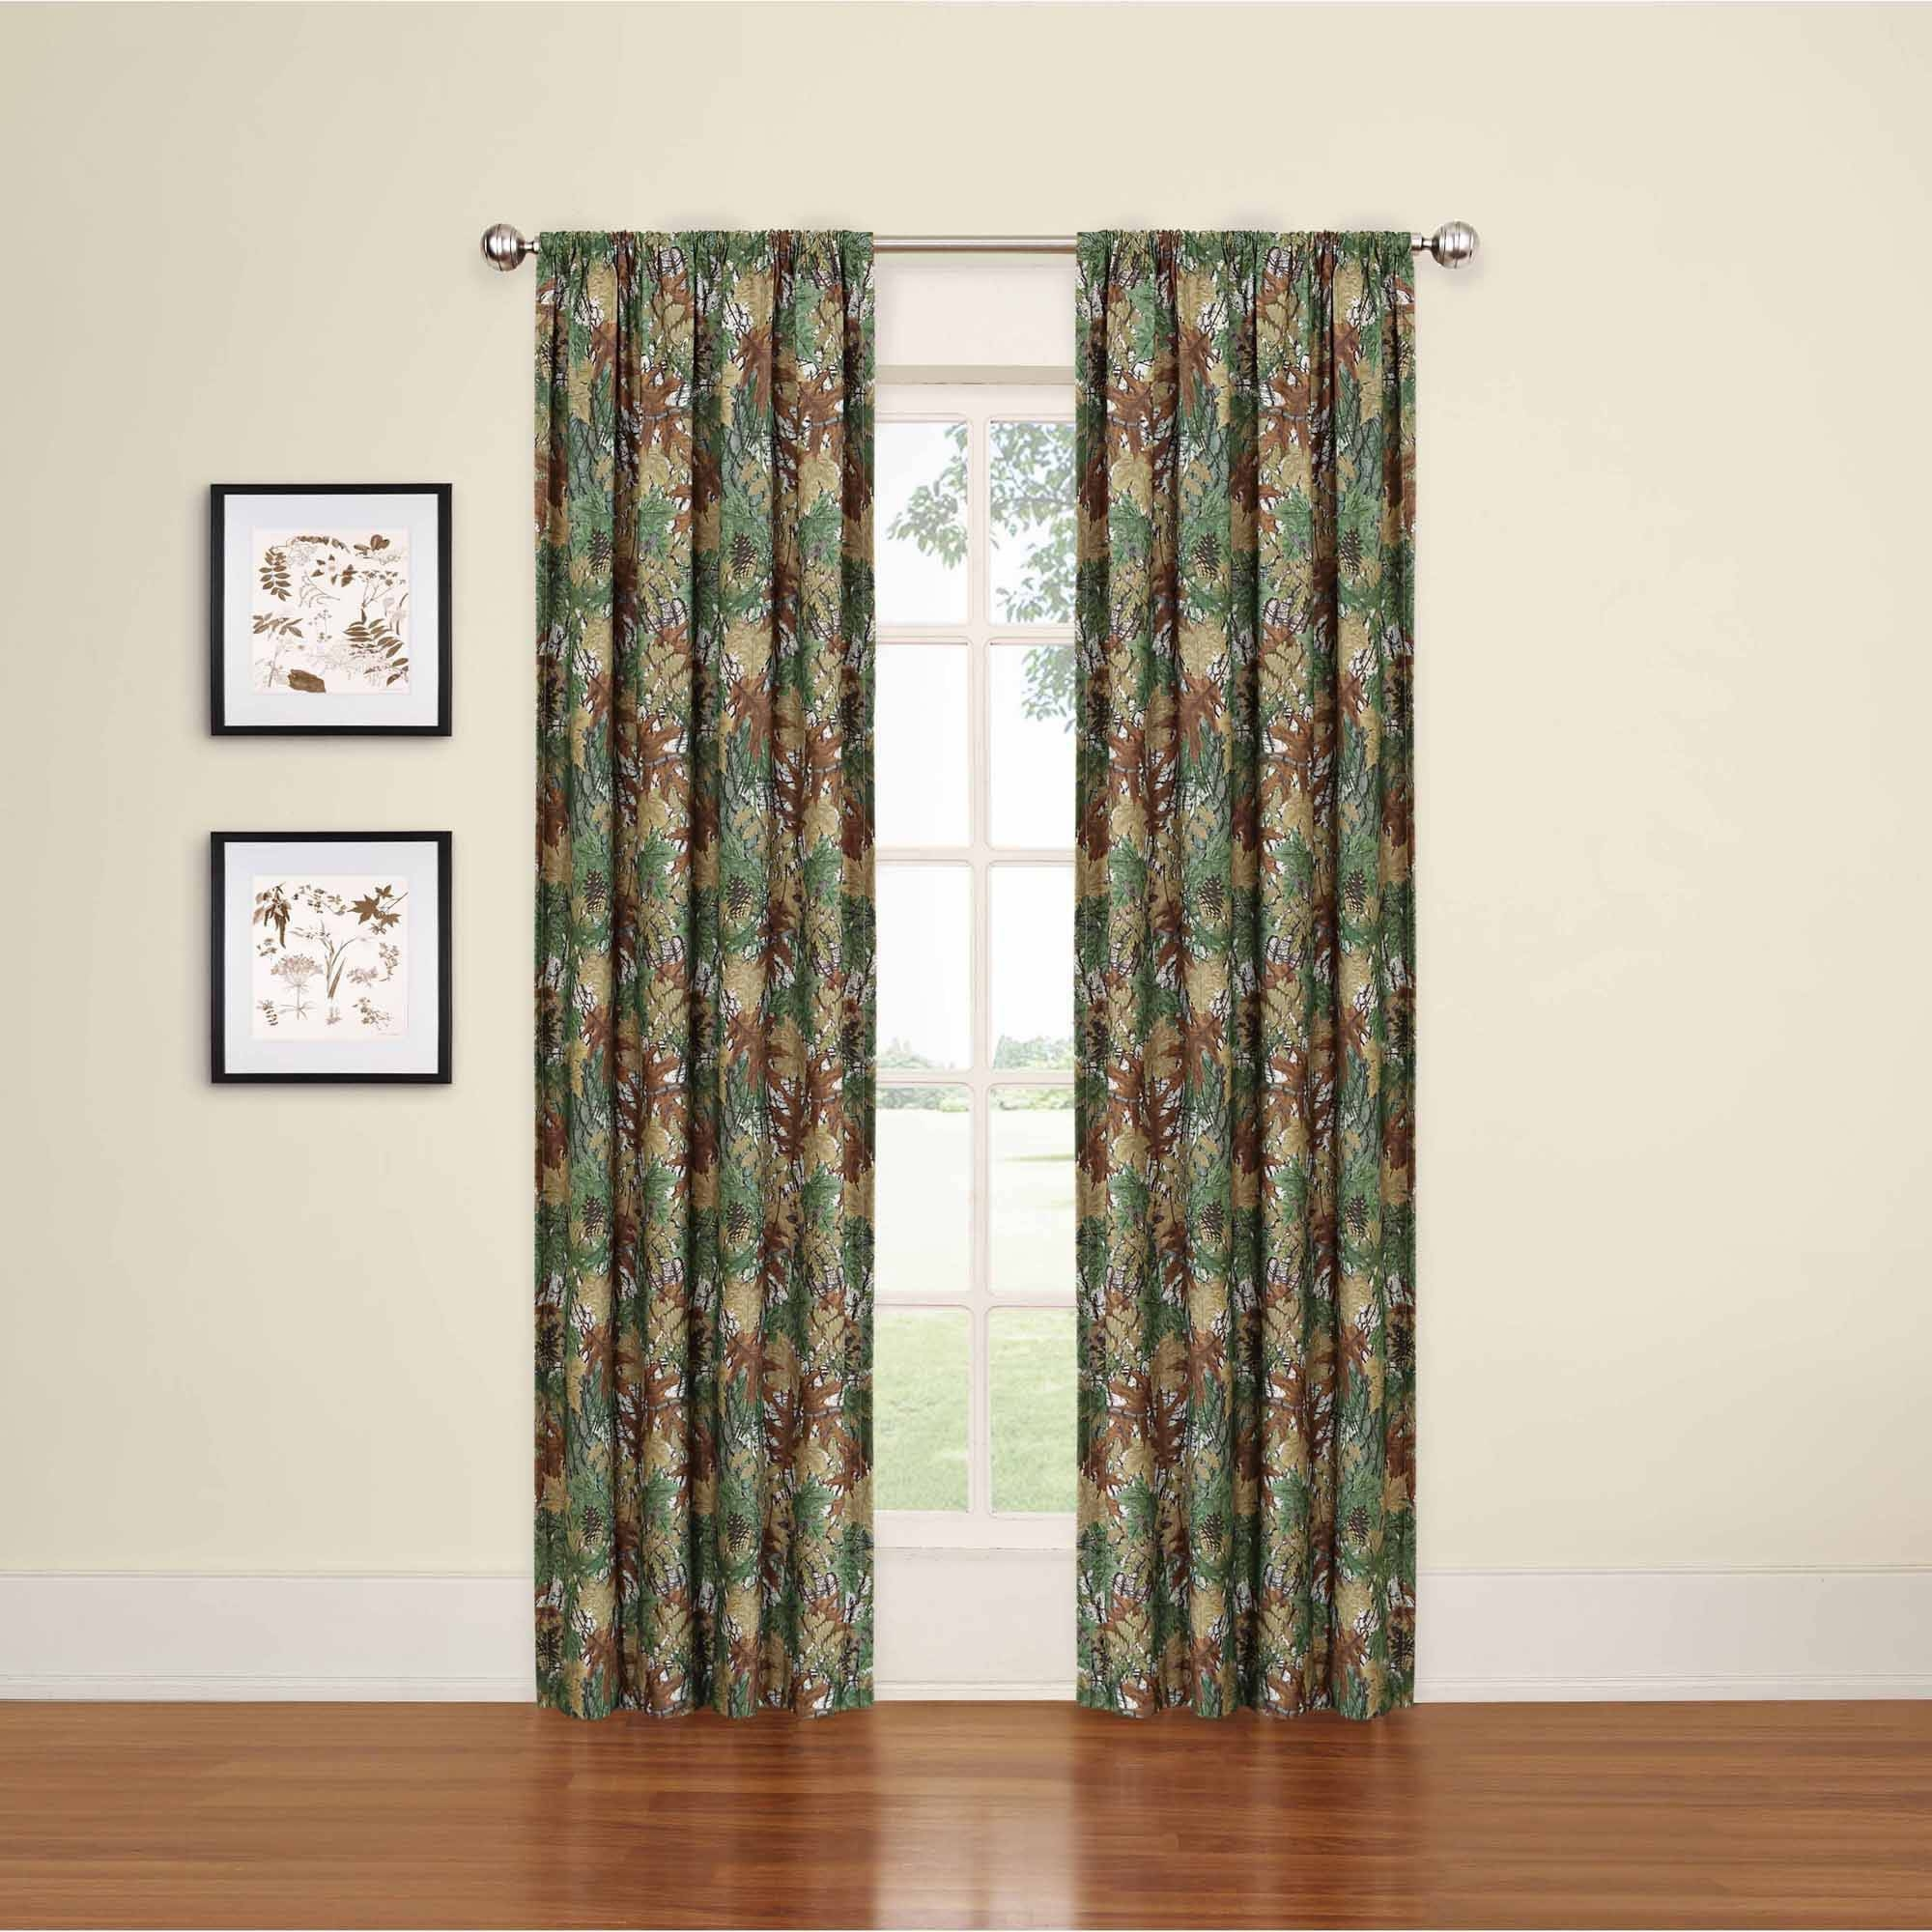 kitchen united tie curtains roman inch luxury curtain shades amazon and unique openaccessphd taupe shade of com up roller blind home by savannah